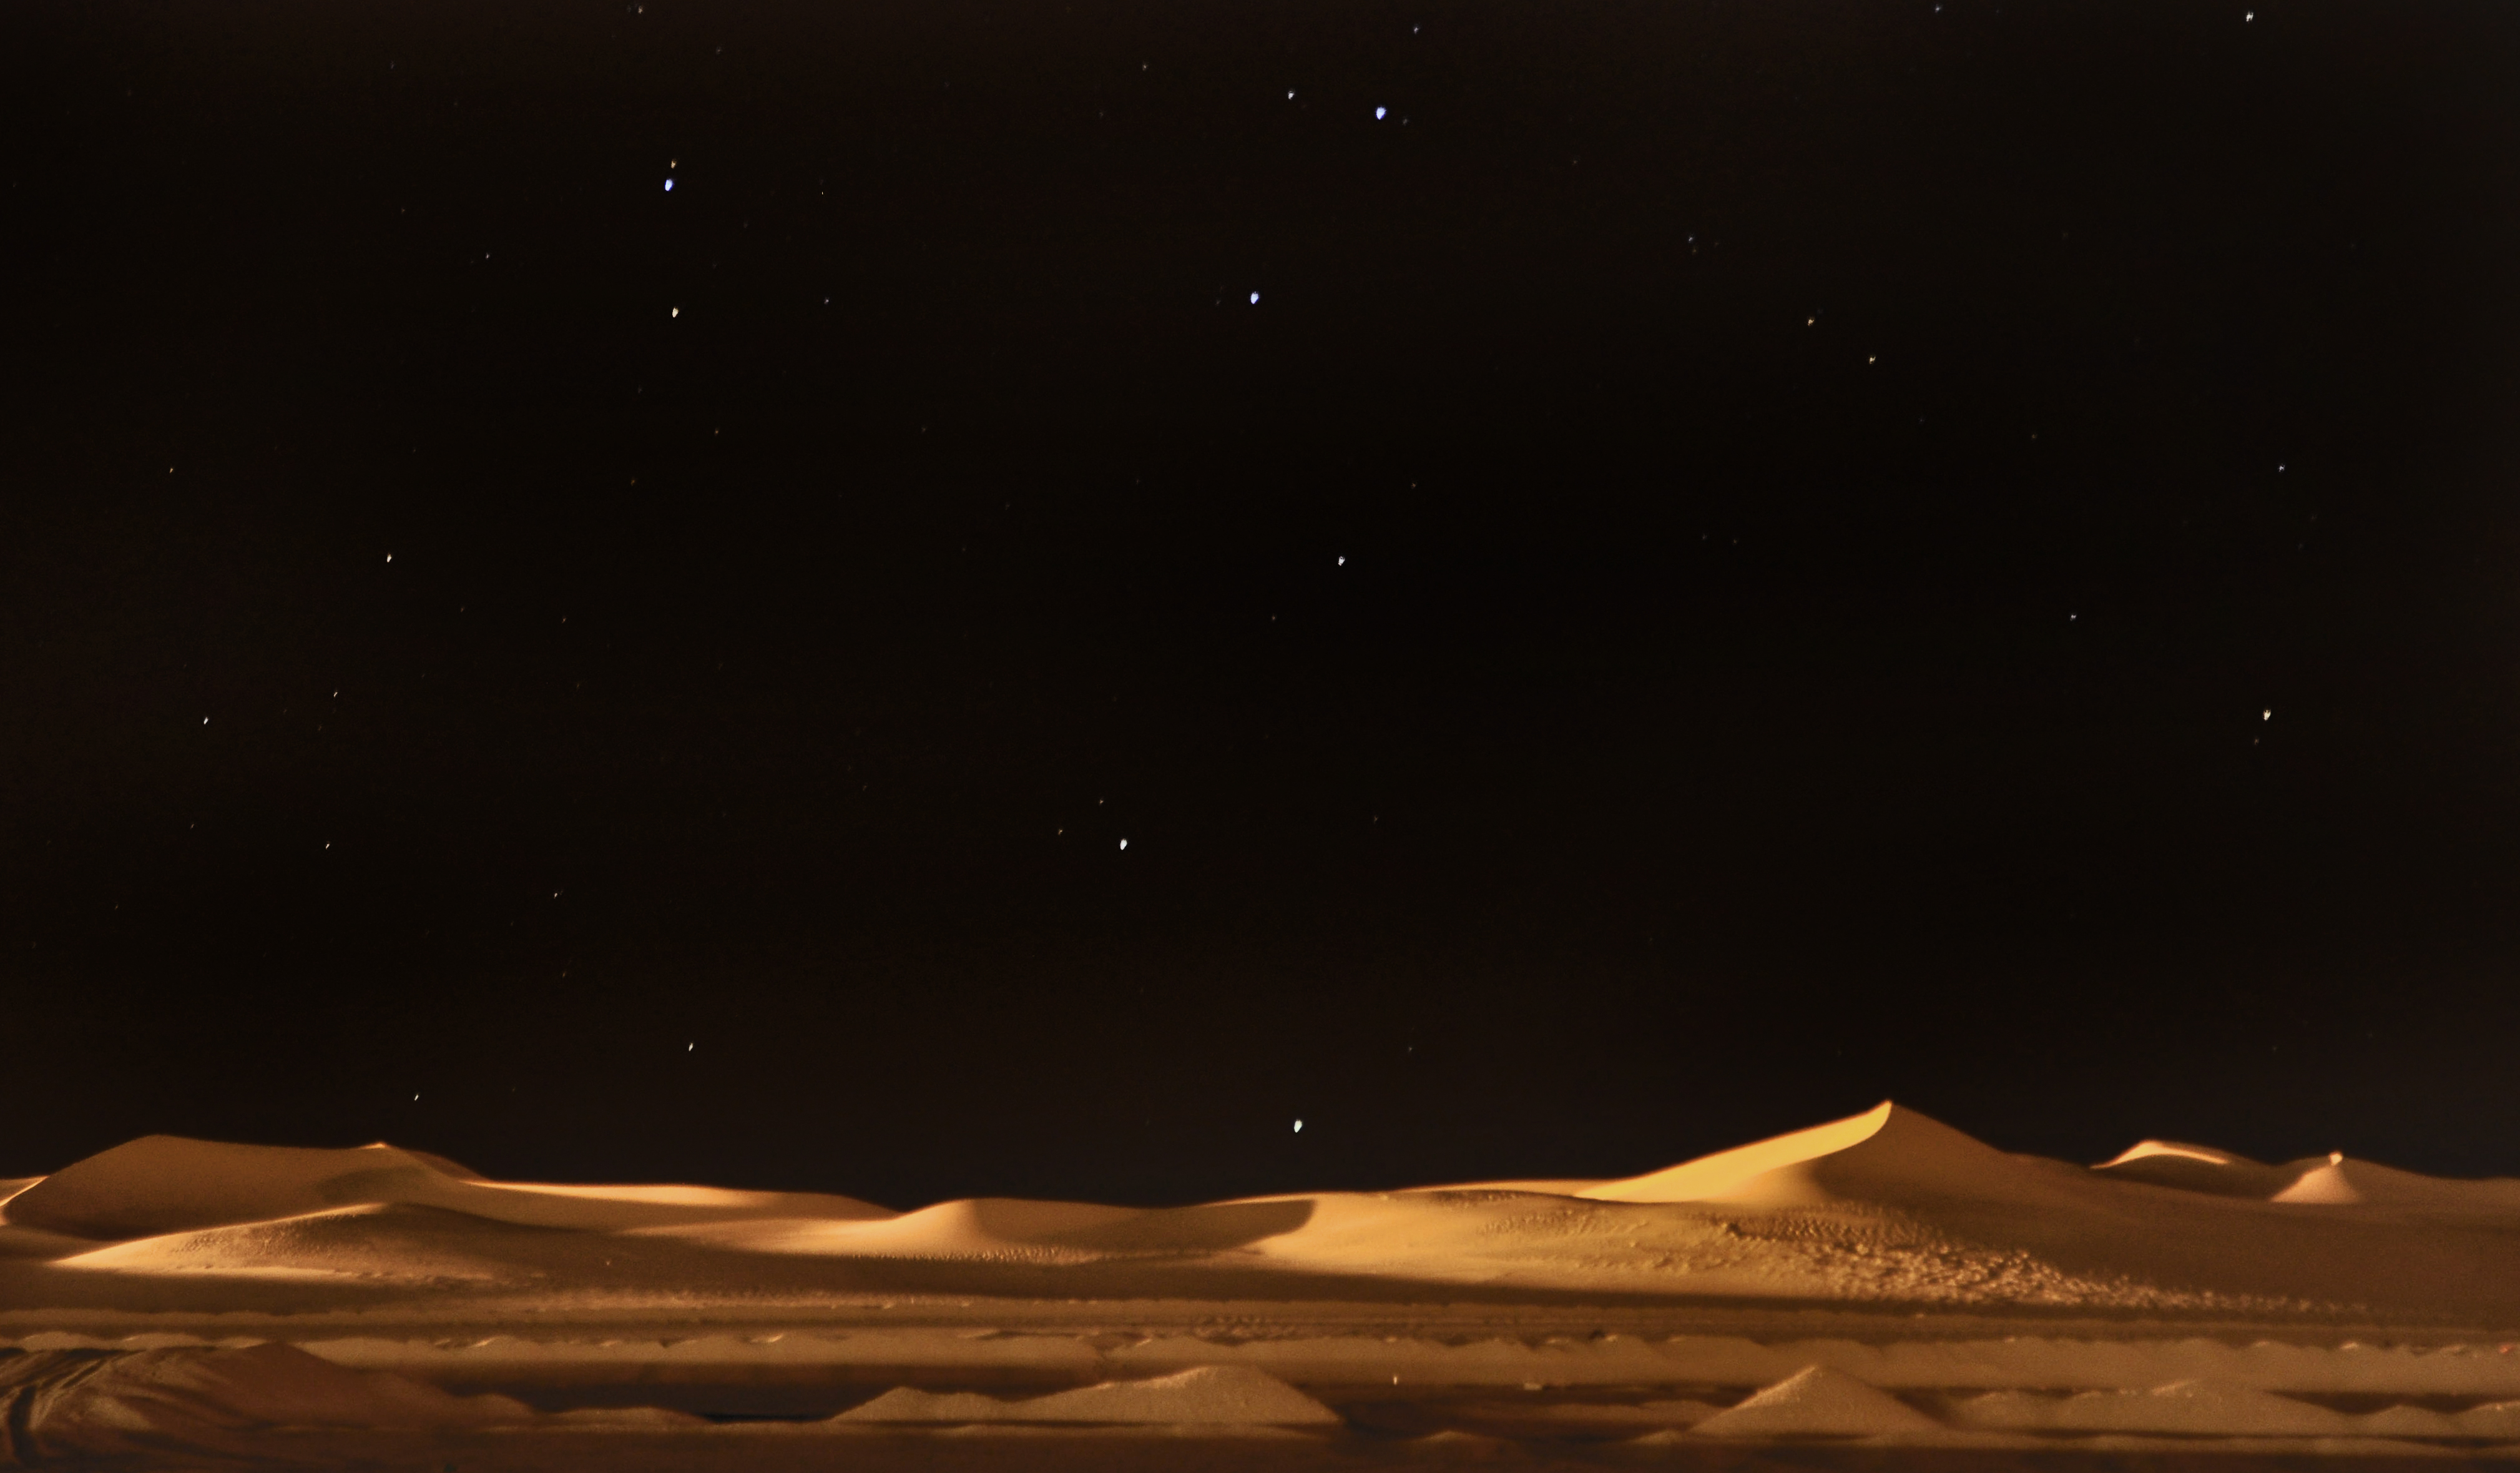 Sahara Algerian Desert at night | Flickr - Photo Sharing!